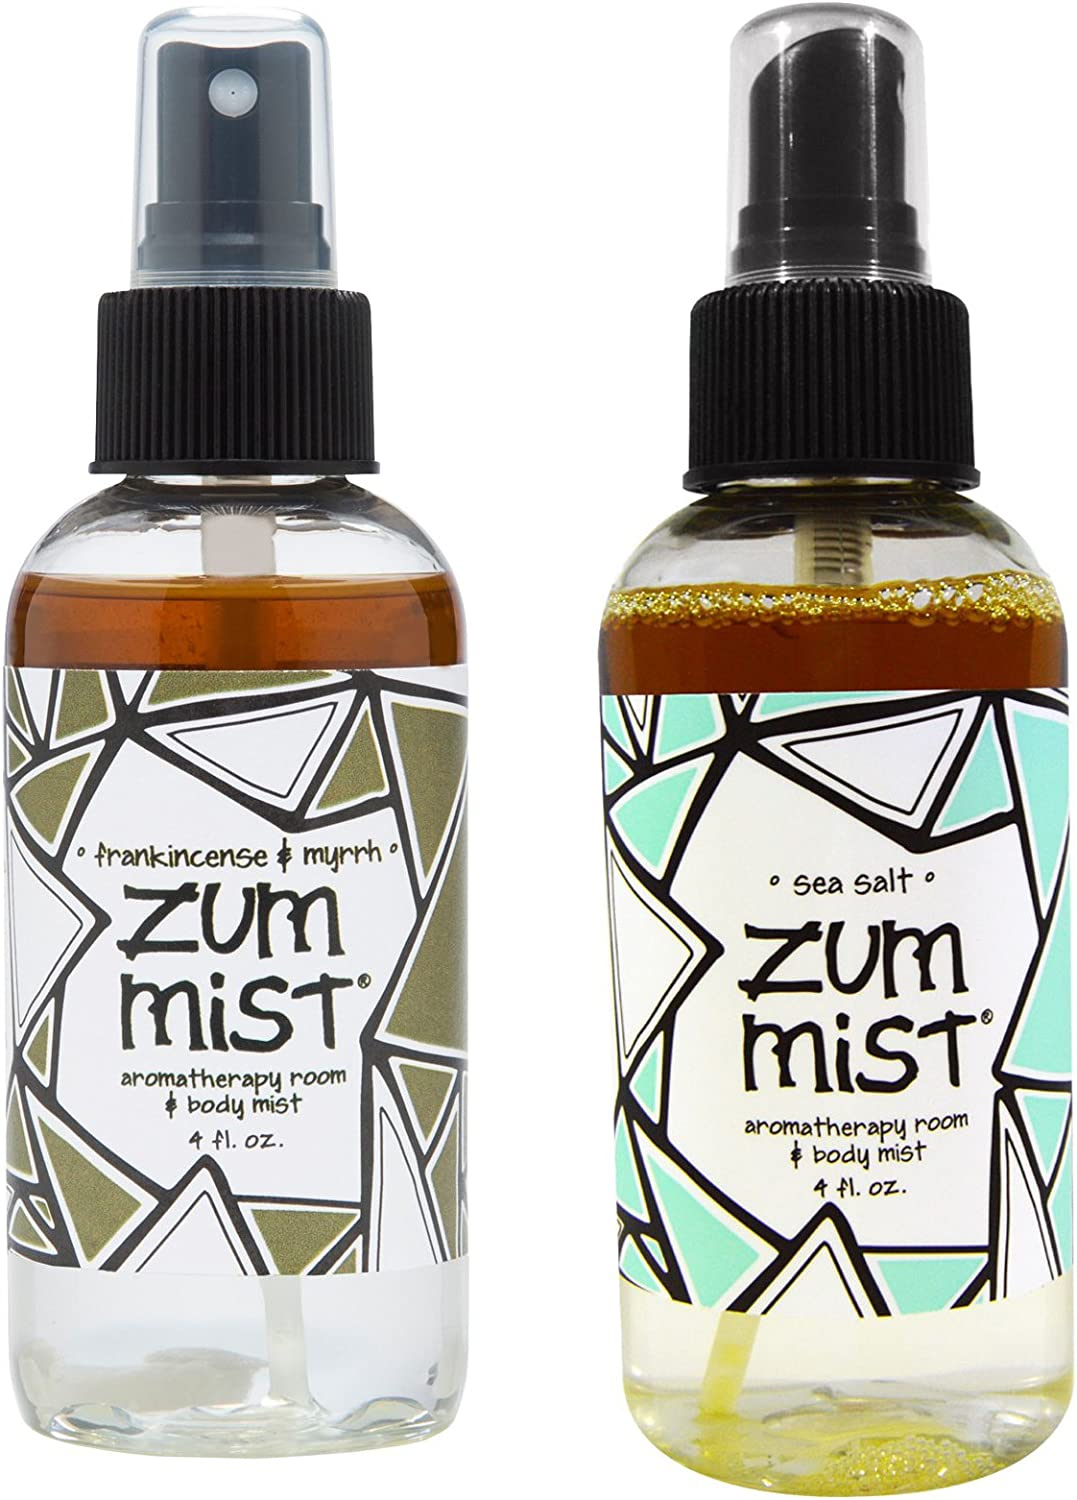 Indigo Wild Zum Mist Frankincense & Myrrh and Sea Salt Mist Body Spray 4 fl. oz. each, 2 Pack